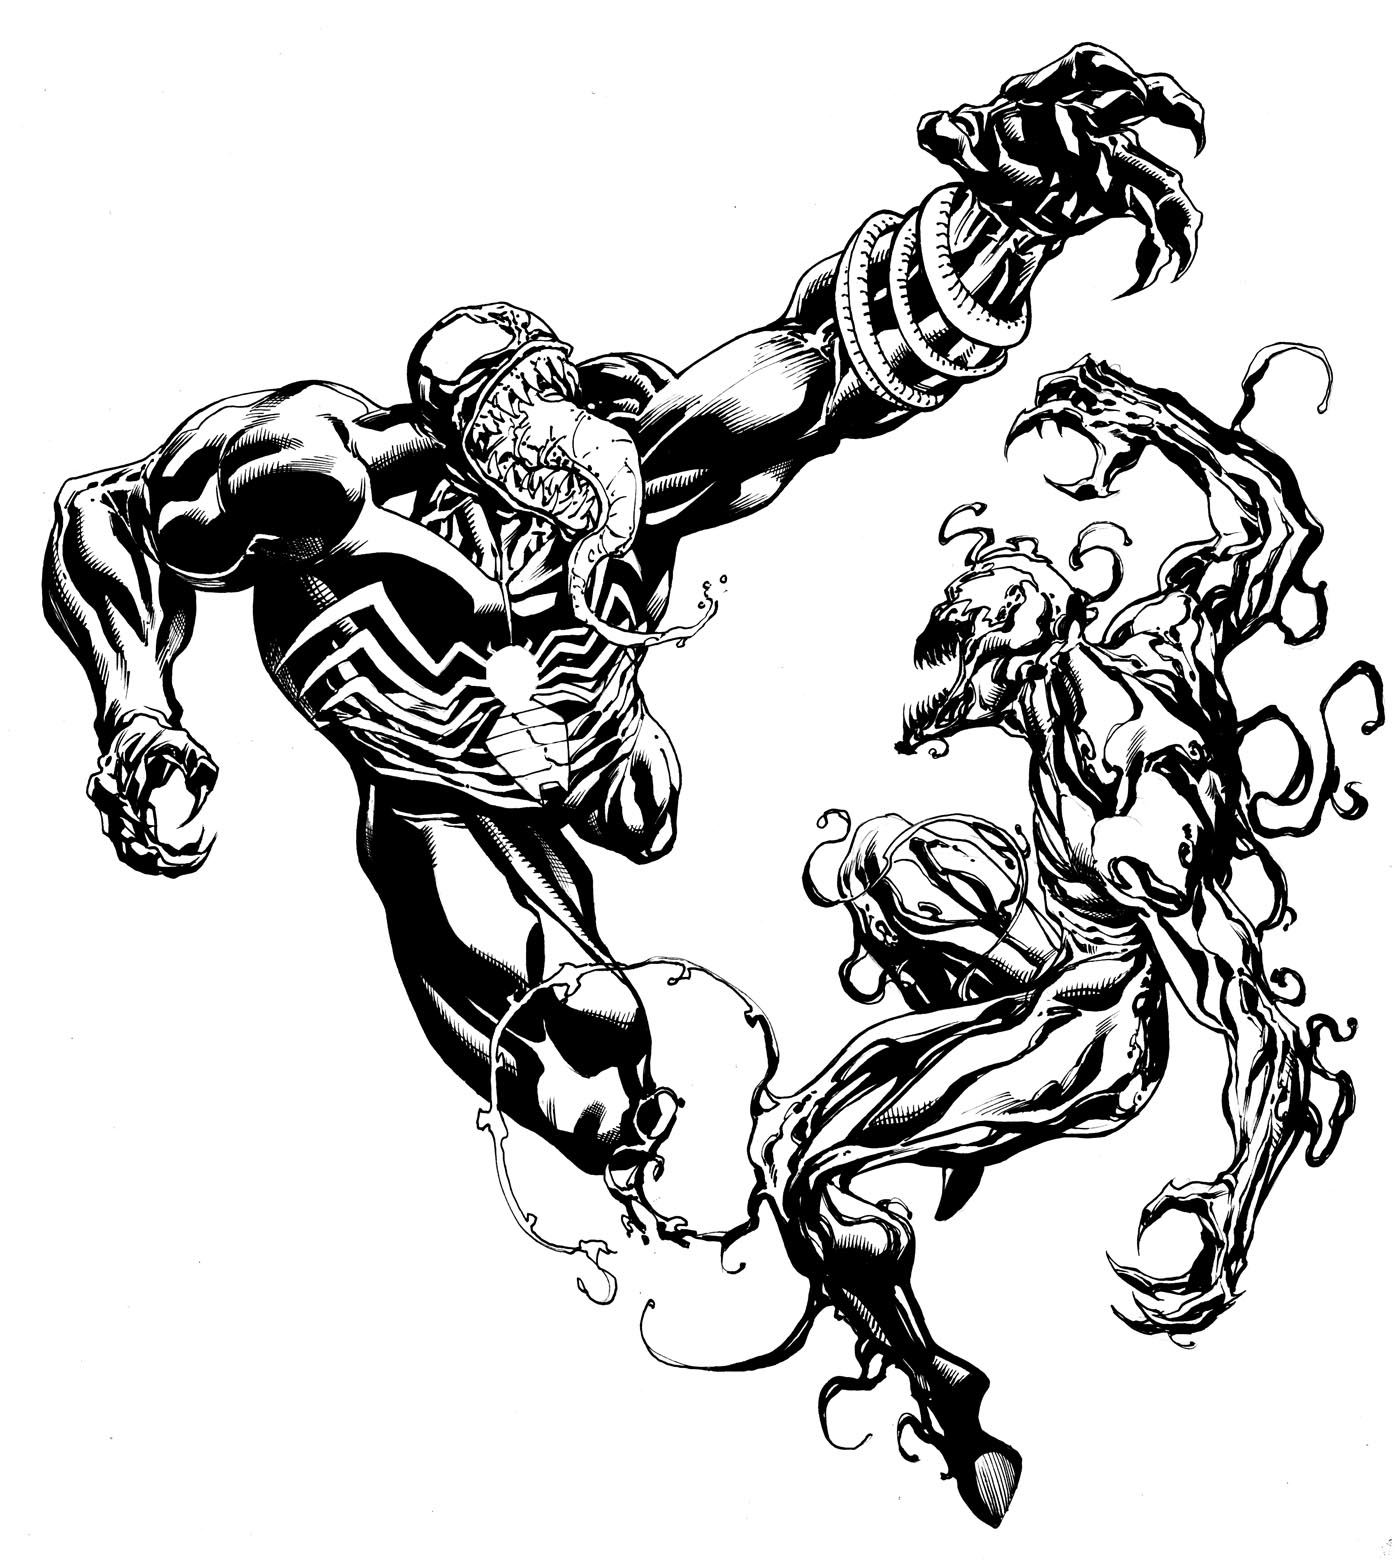 standing spiderman coloring pages | Robert Atkins Art: Symbiote Partay pt 2.